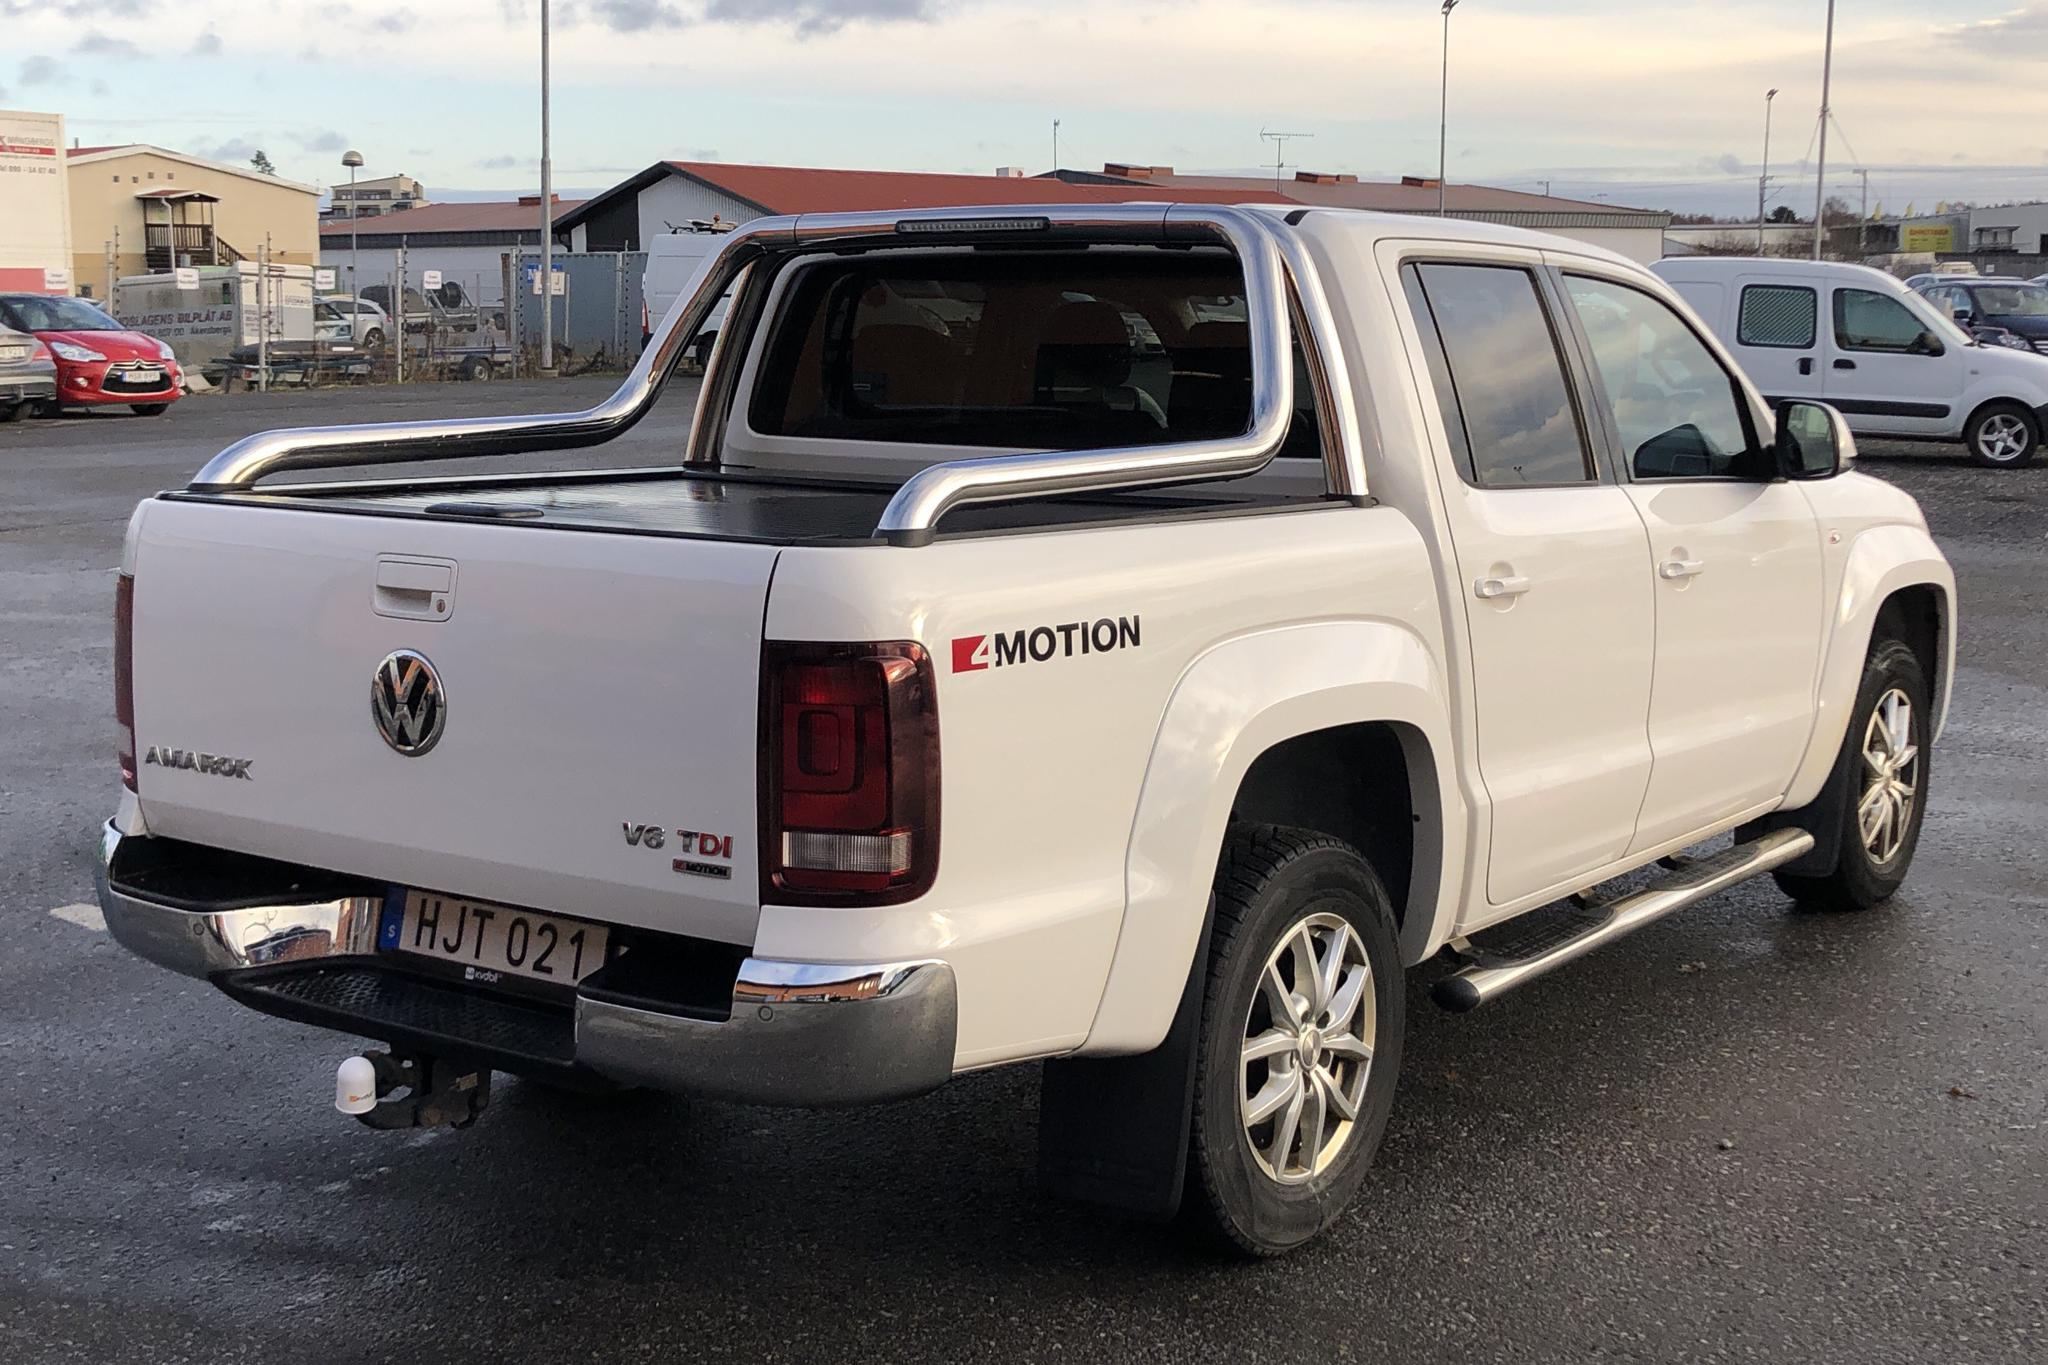 VW Amarok 3.0 TDI 4motion (224hk) - 150 300 km - Automatic - white - 2017